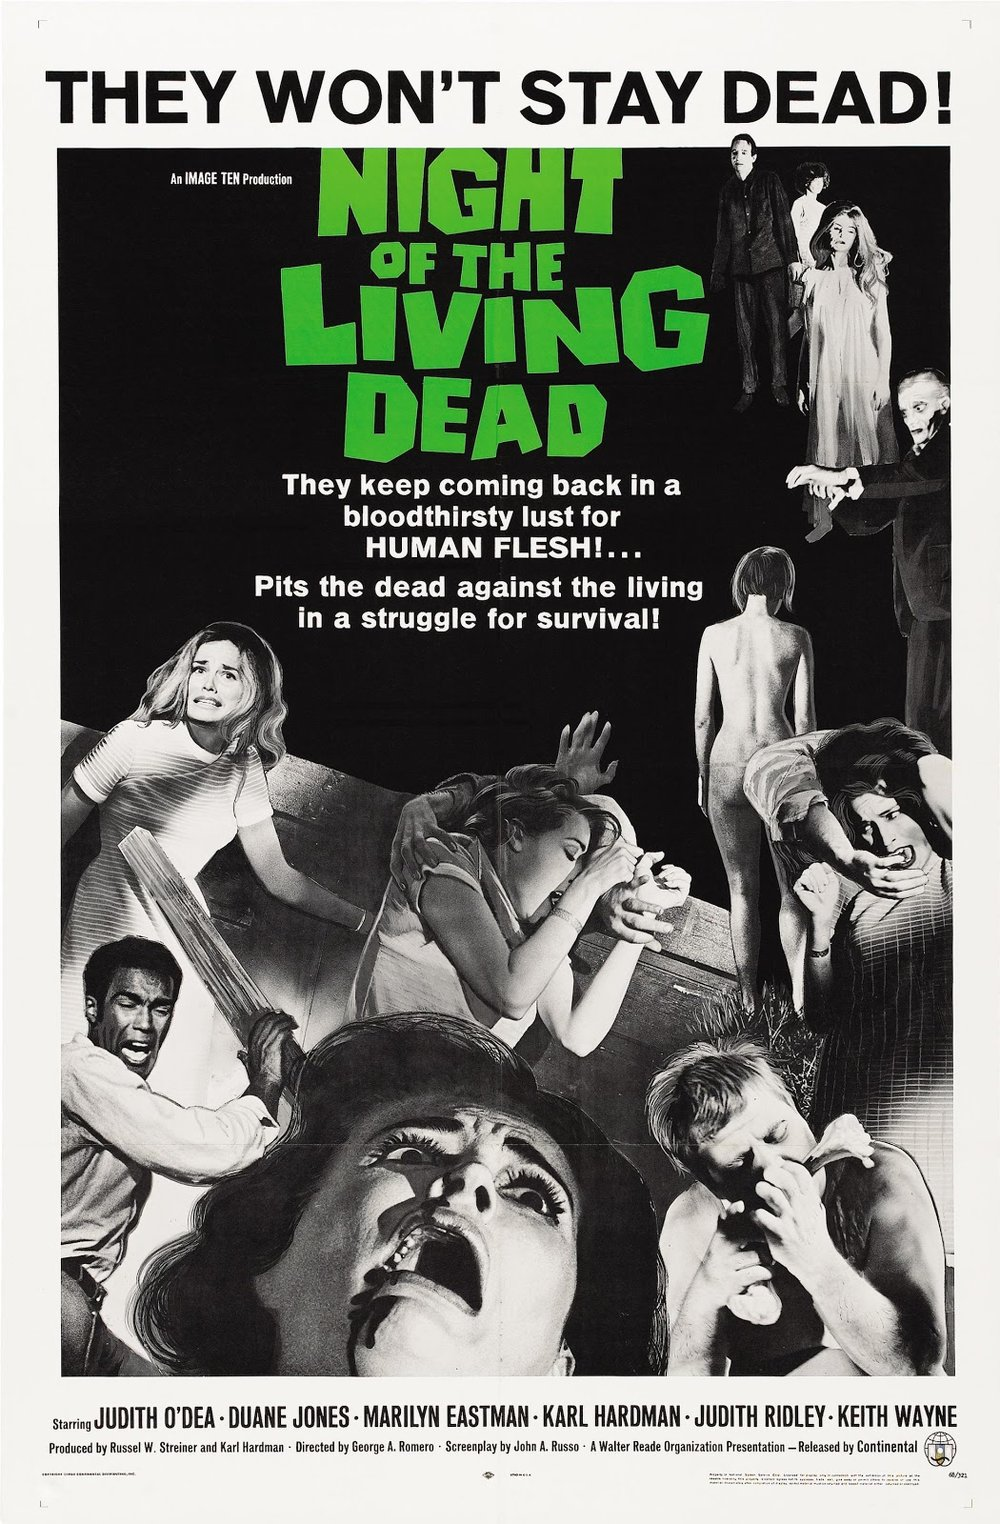 NIGHT OF THE LIVING DEAD (2).jpg